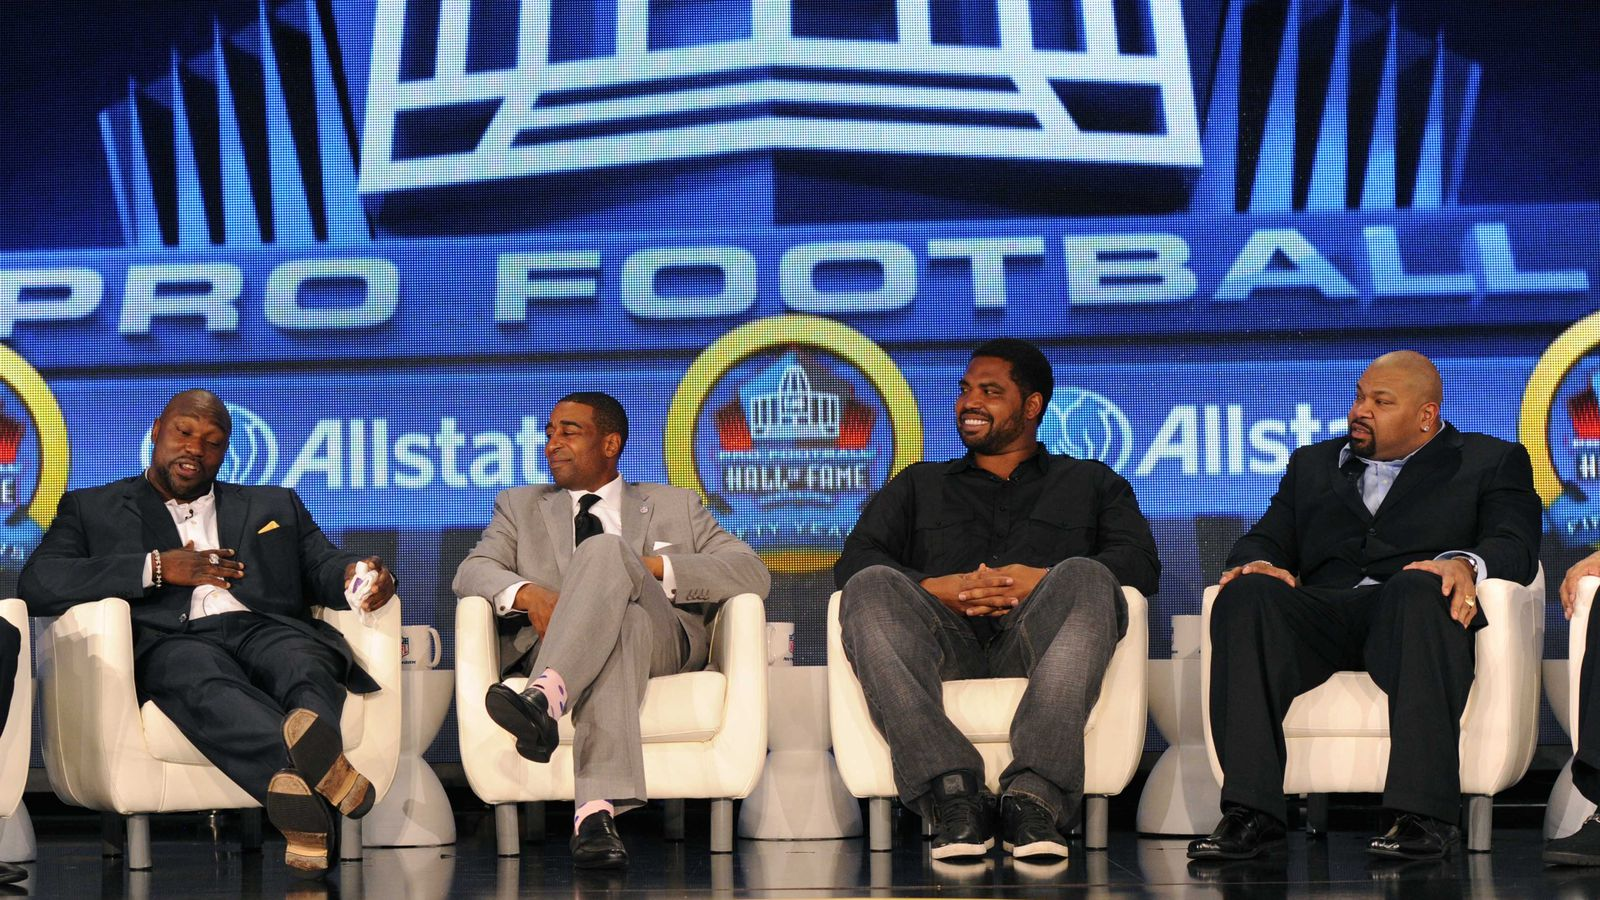 2013 Pro Football Hall of Fame streaming: How to watch NFL ...